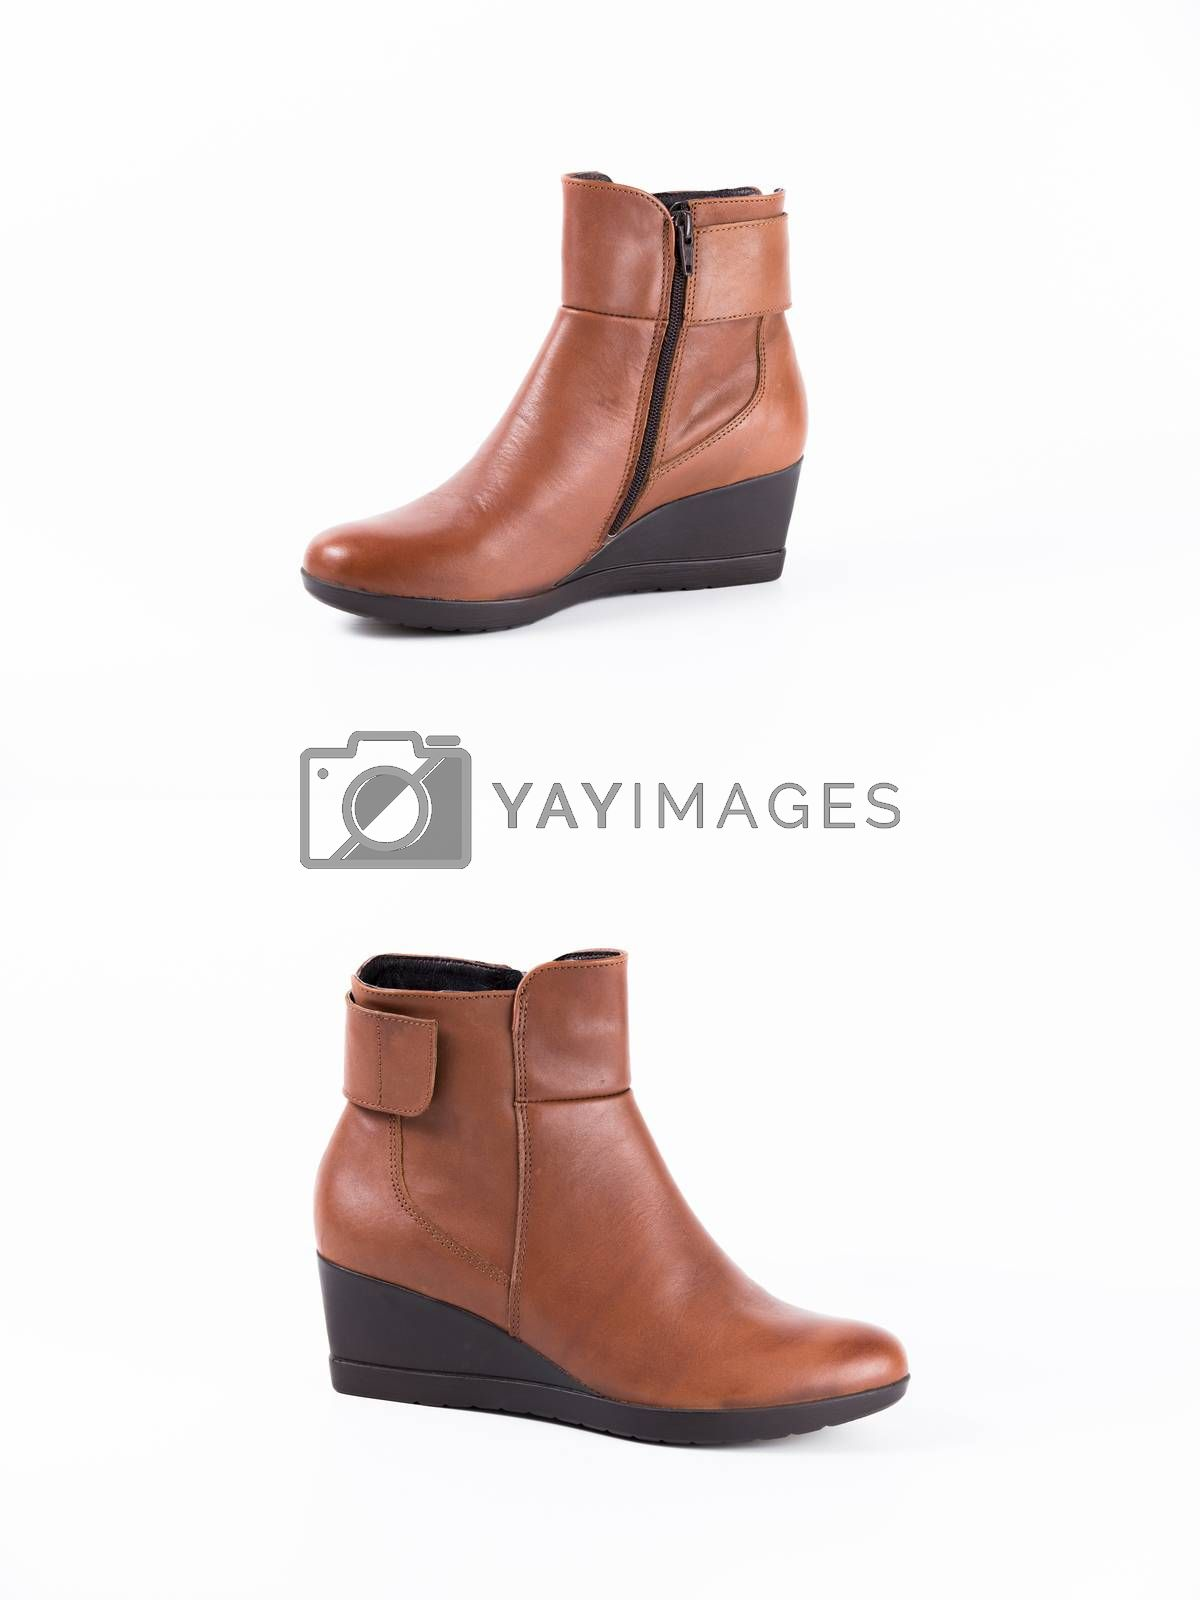 Pair of brown leather boots on white background, isolated product, top view.